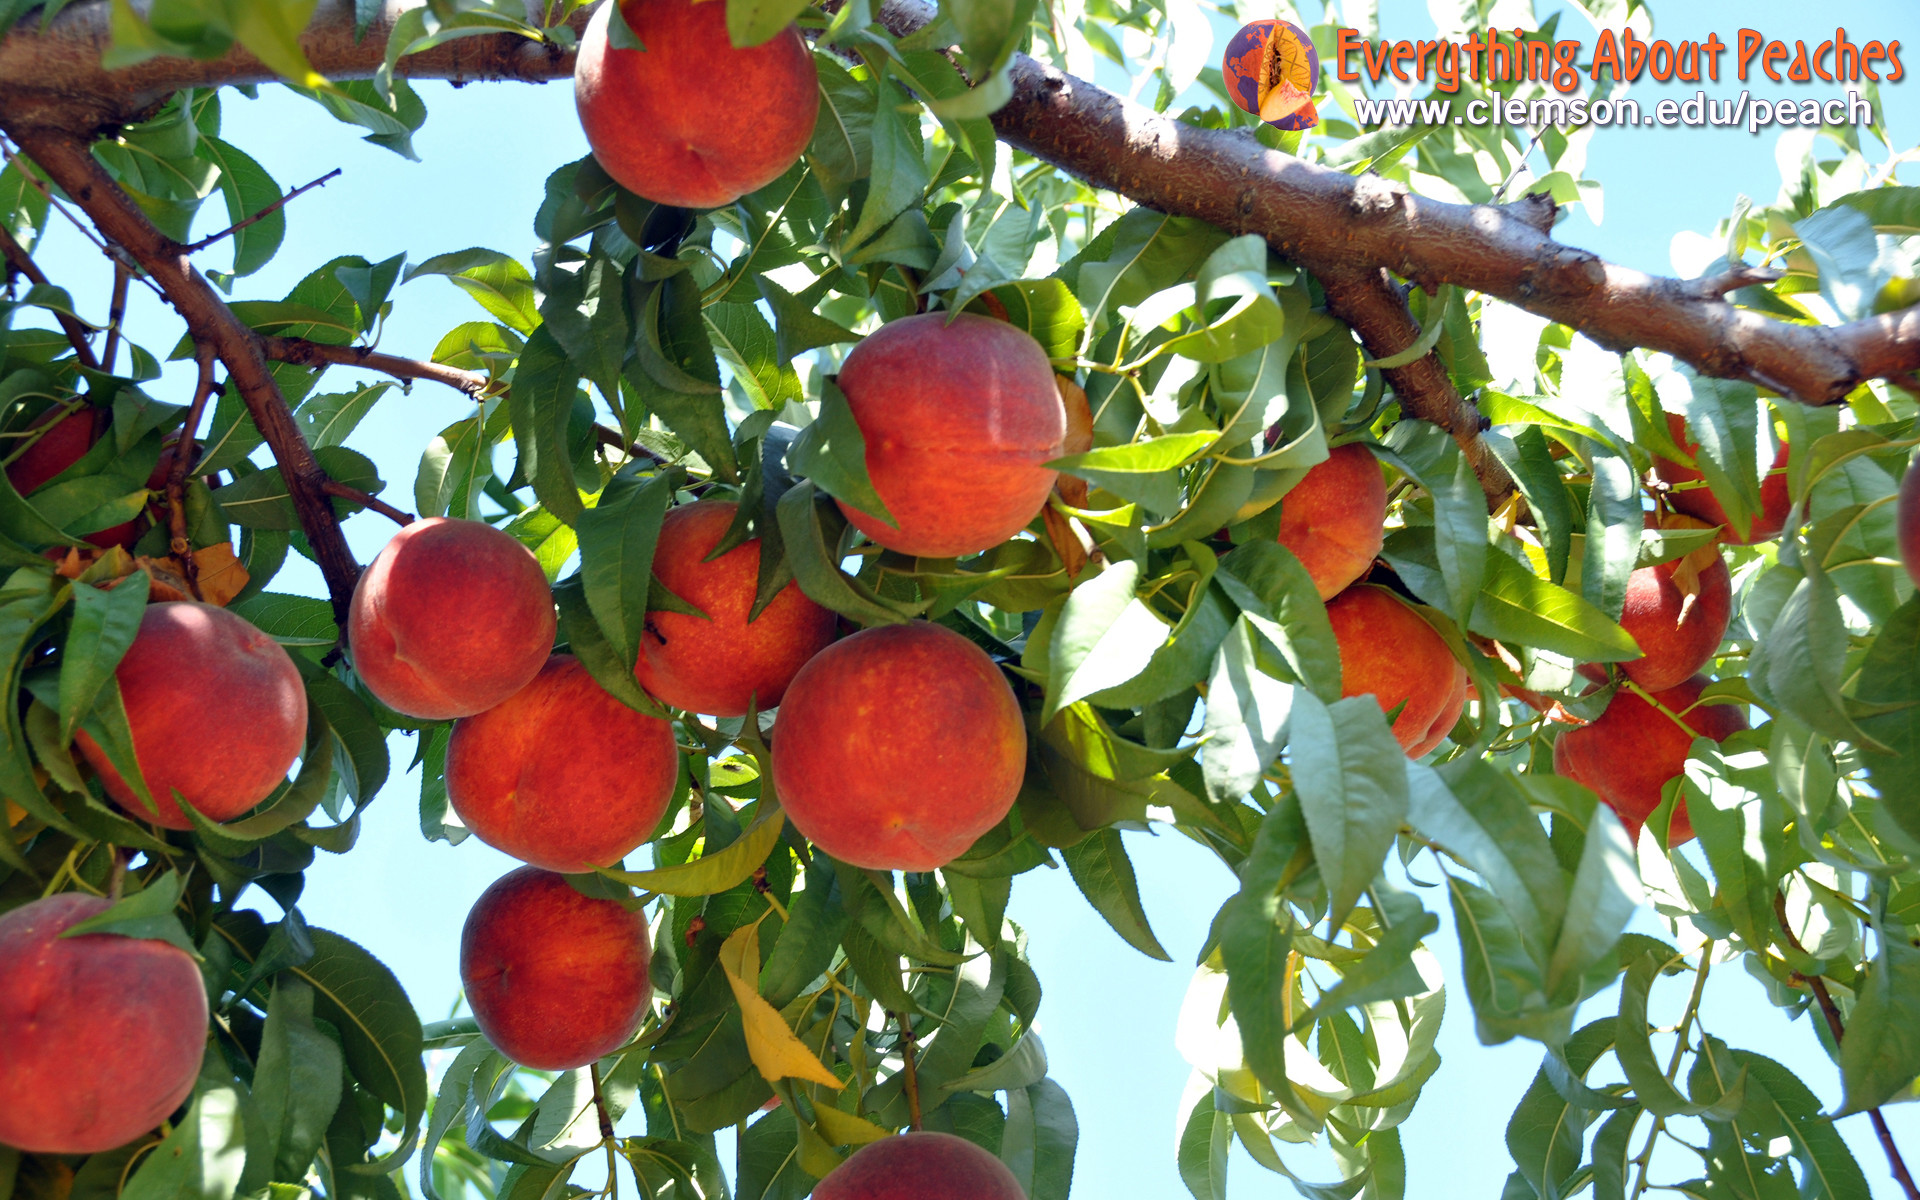 Everything About Peaches